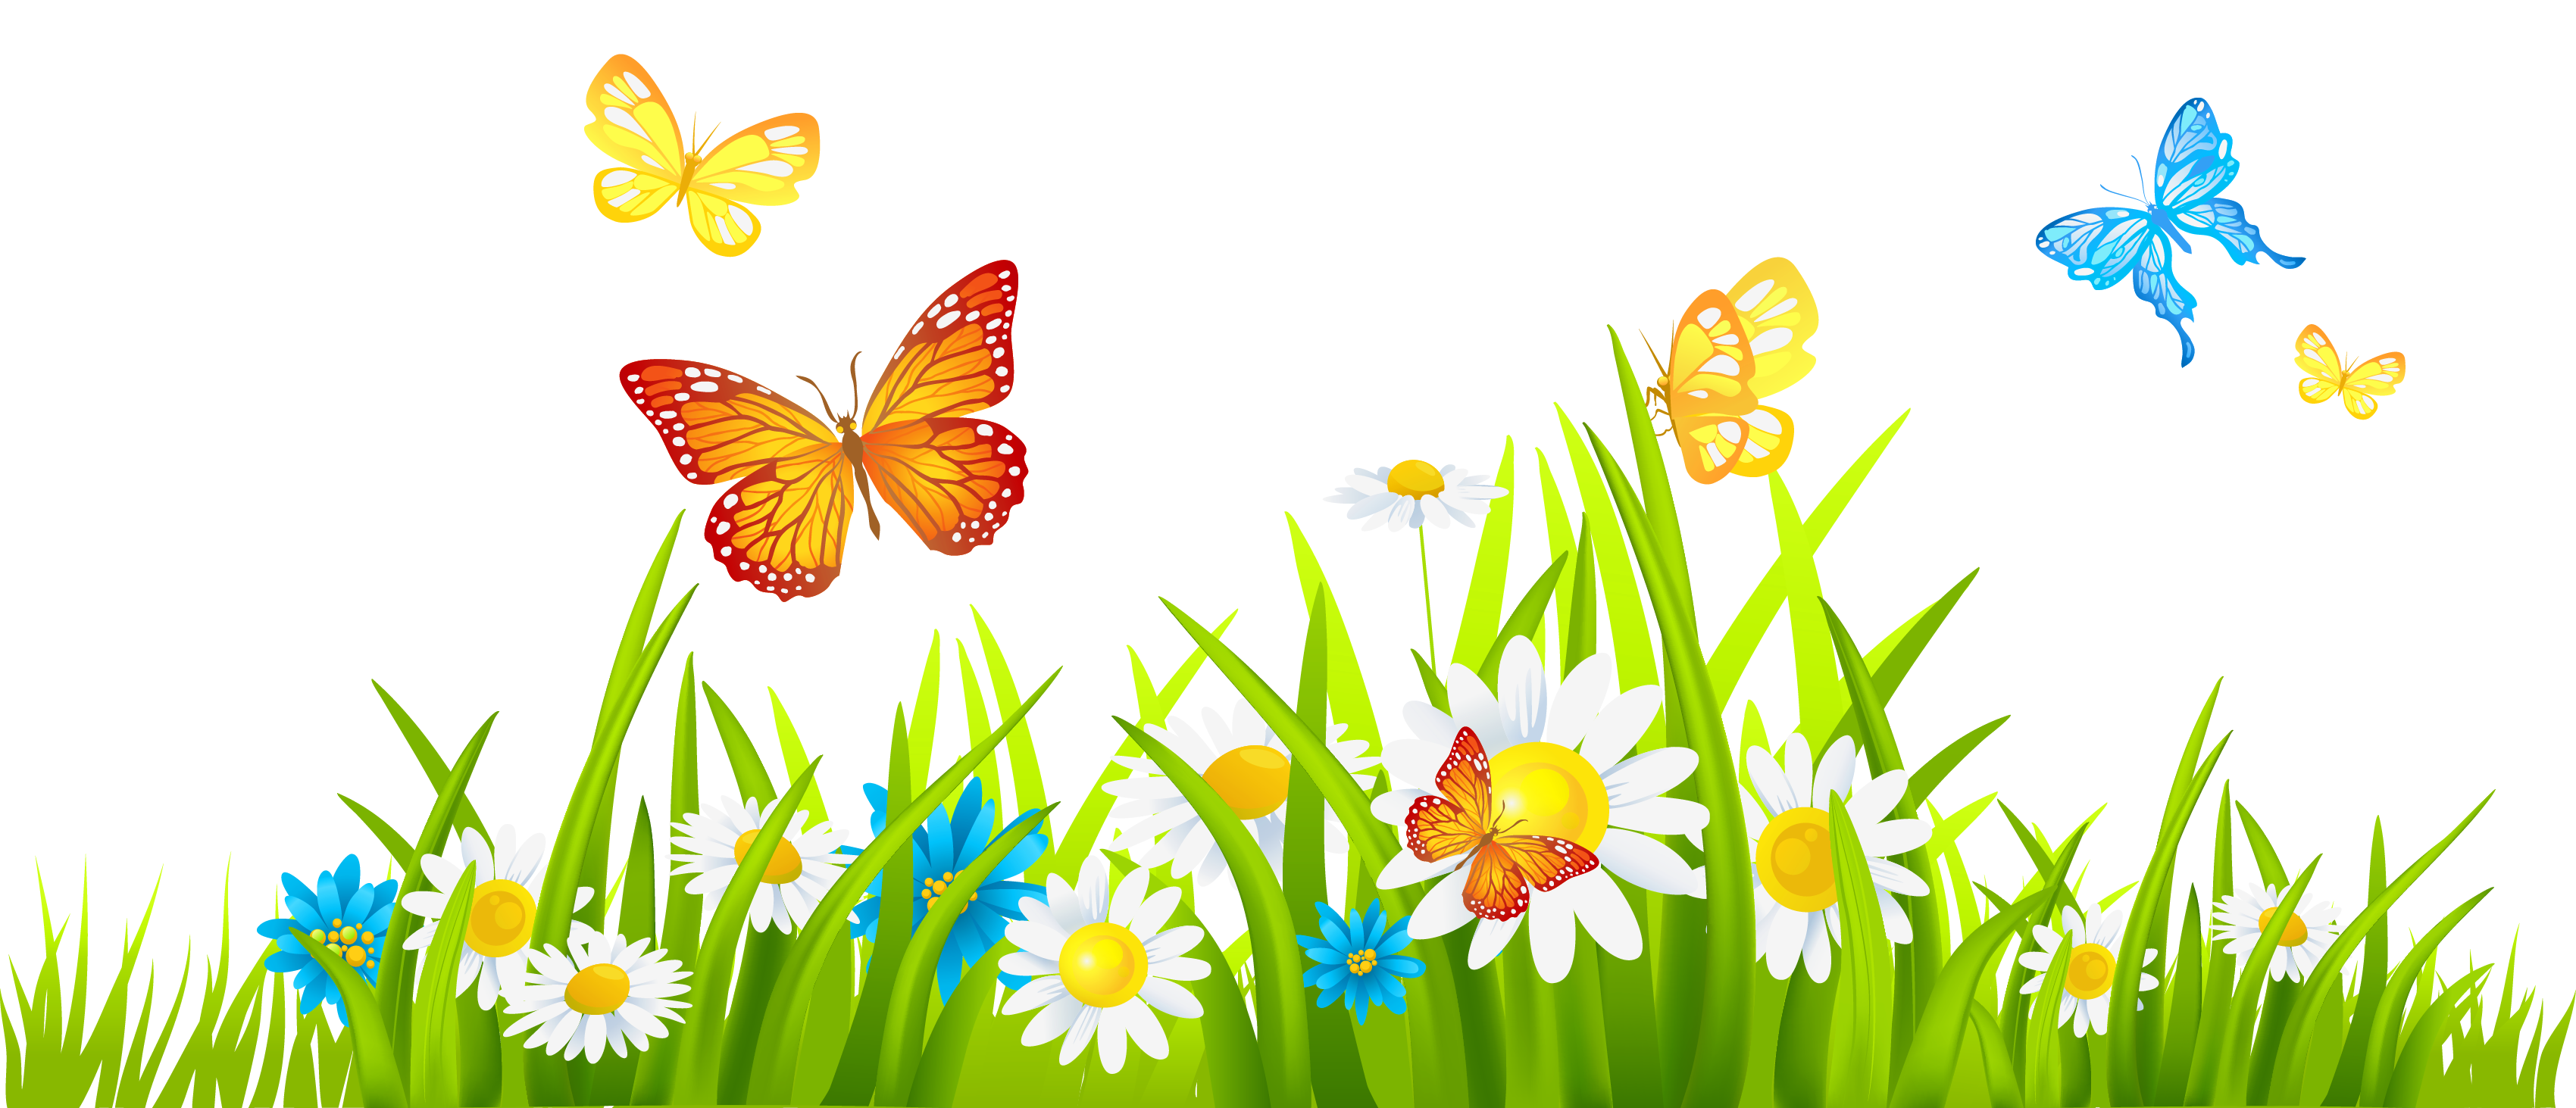 May flowers border clip art